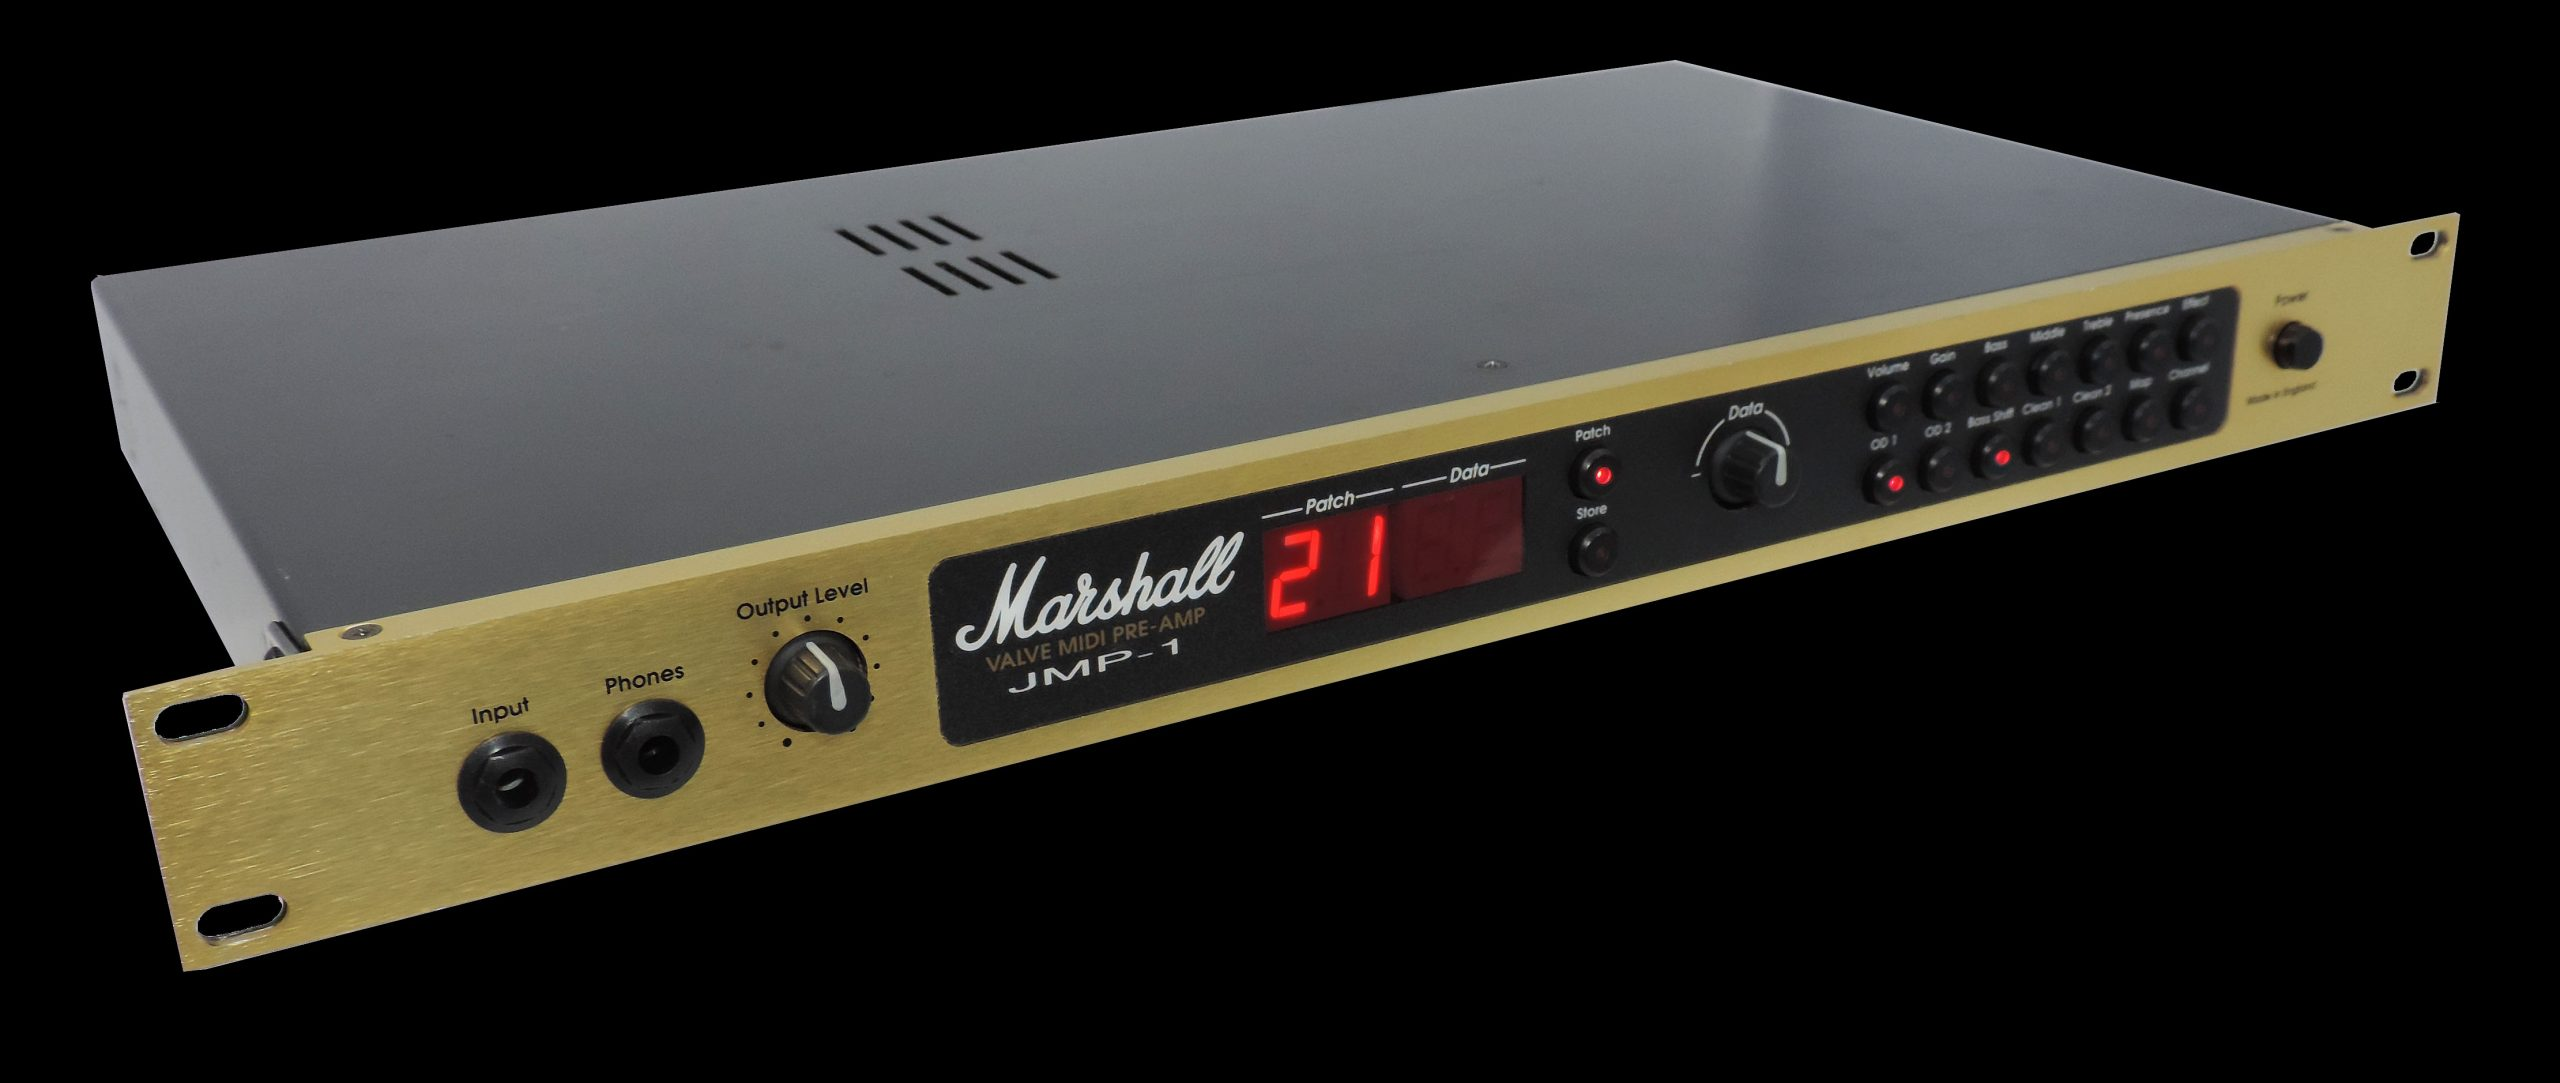 Marshall JMP-1 looking, feeling and sounding like new